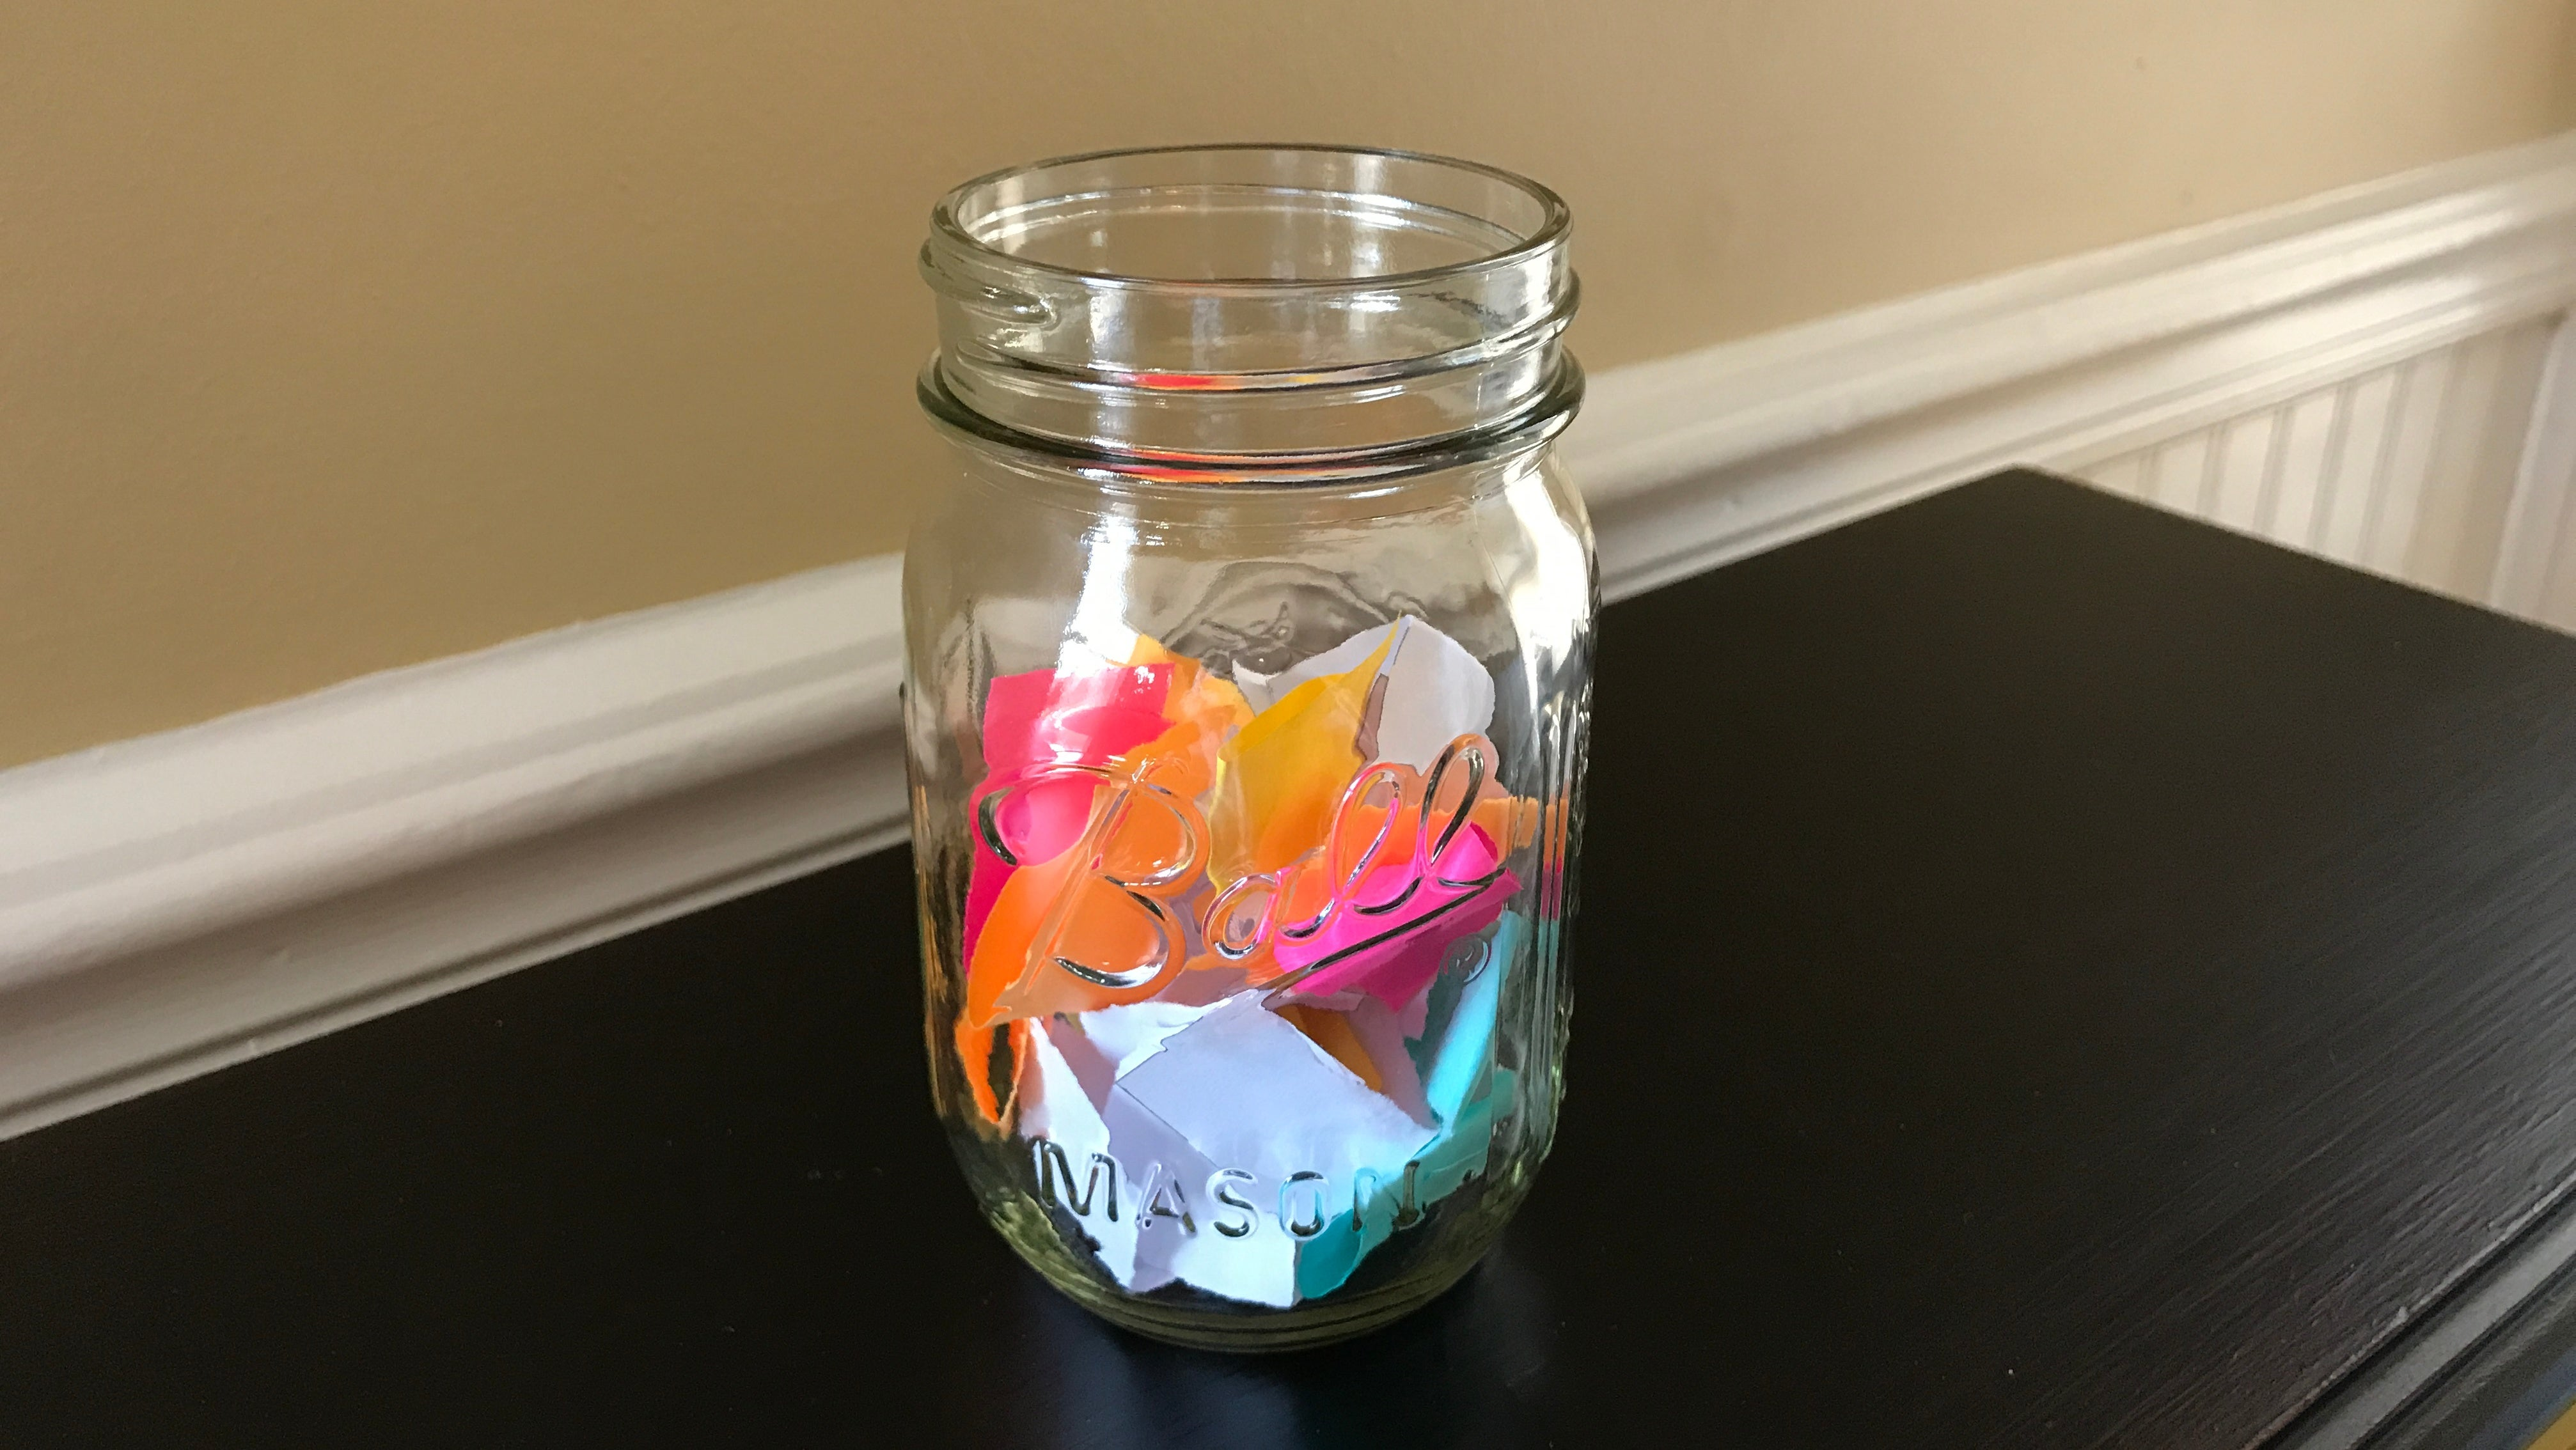 Create An 'I Want' Jar For All Your Little Kid's Desires